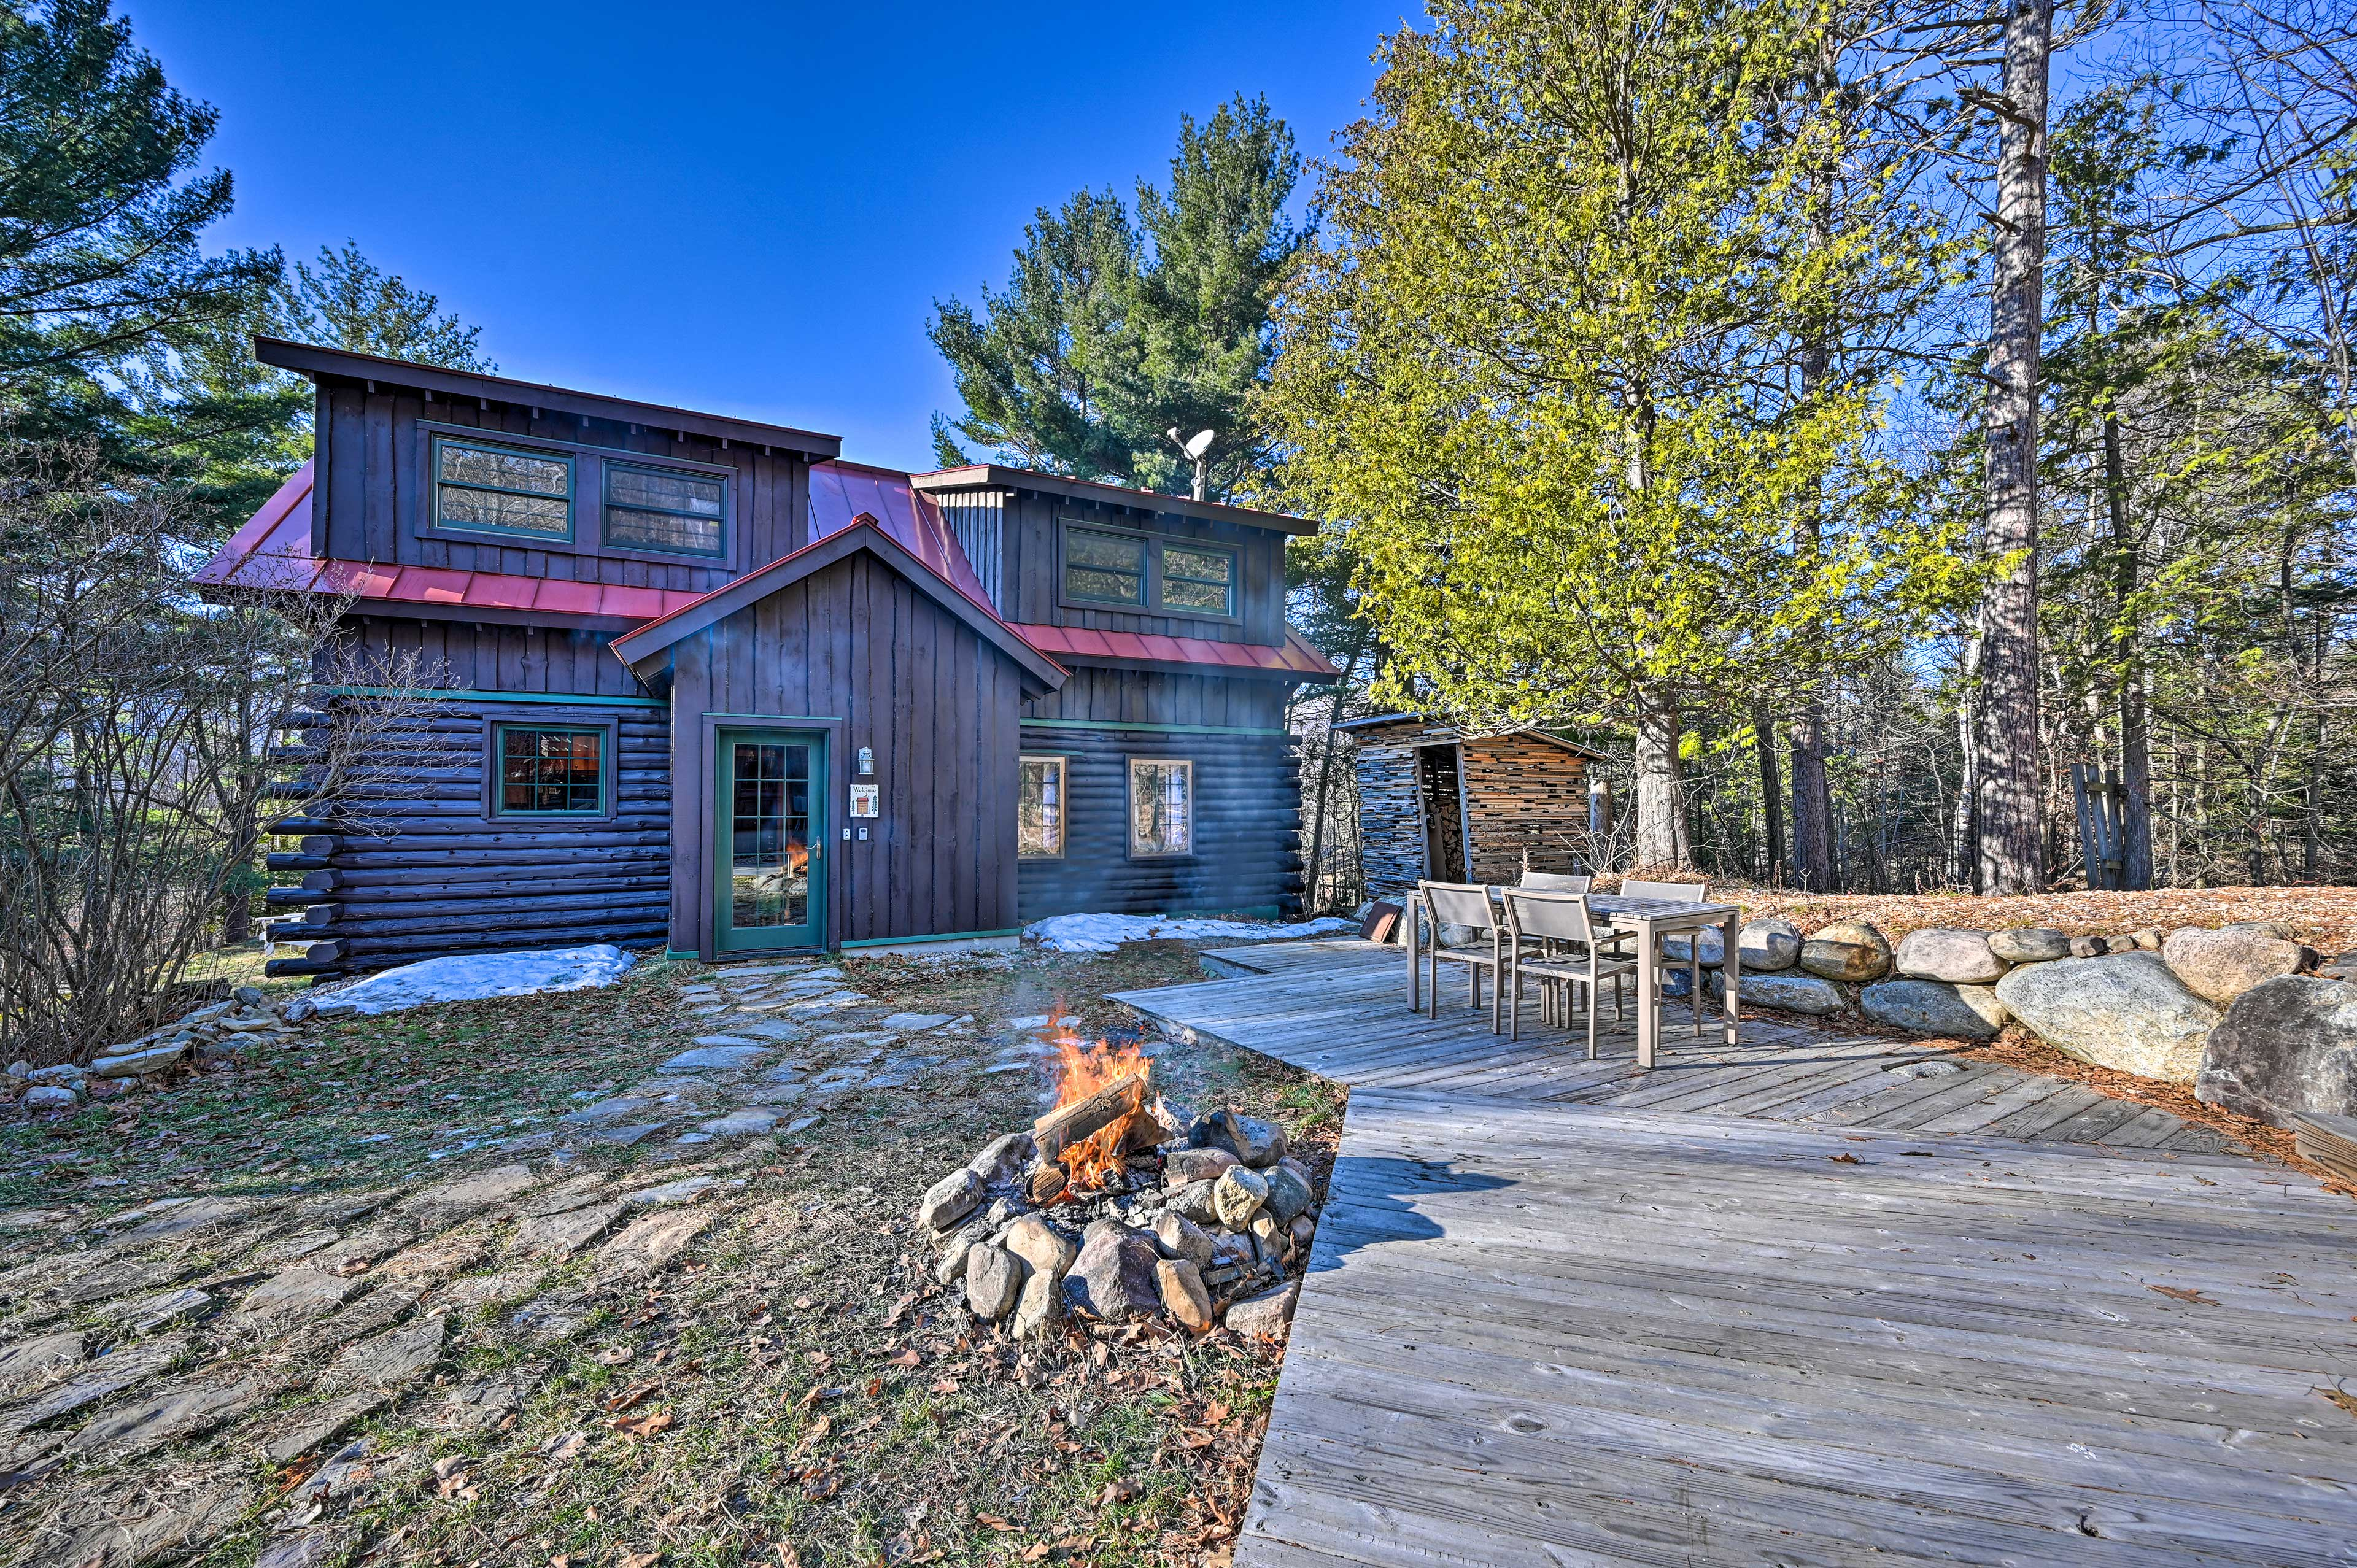 Escape to the mountains for a relaxing stay at this cozy Wilmington log cabin!